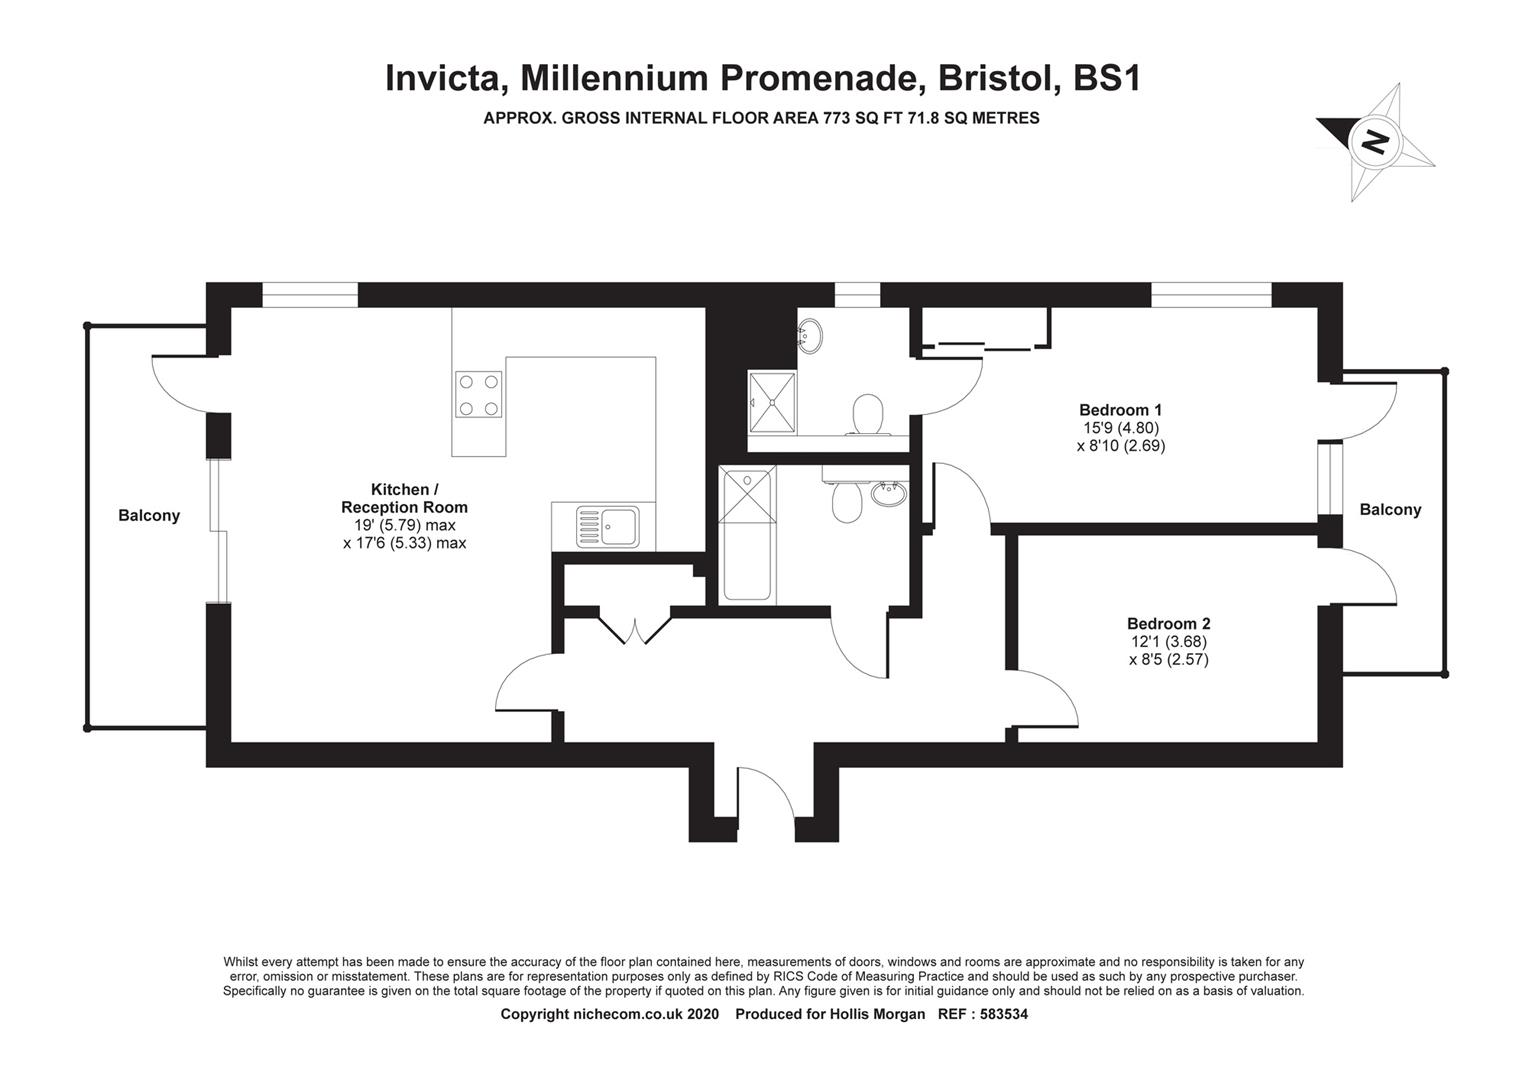 Floorplans For Invicta, Harbourside